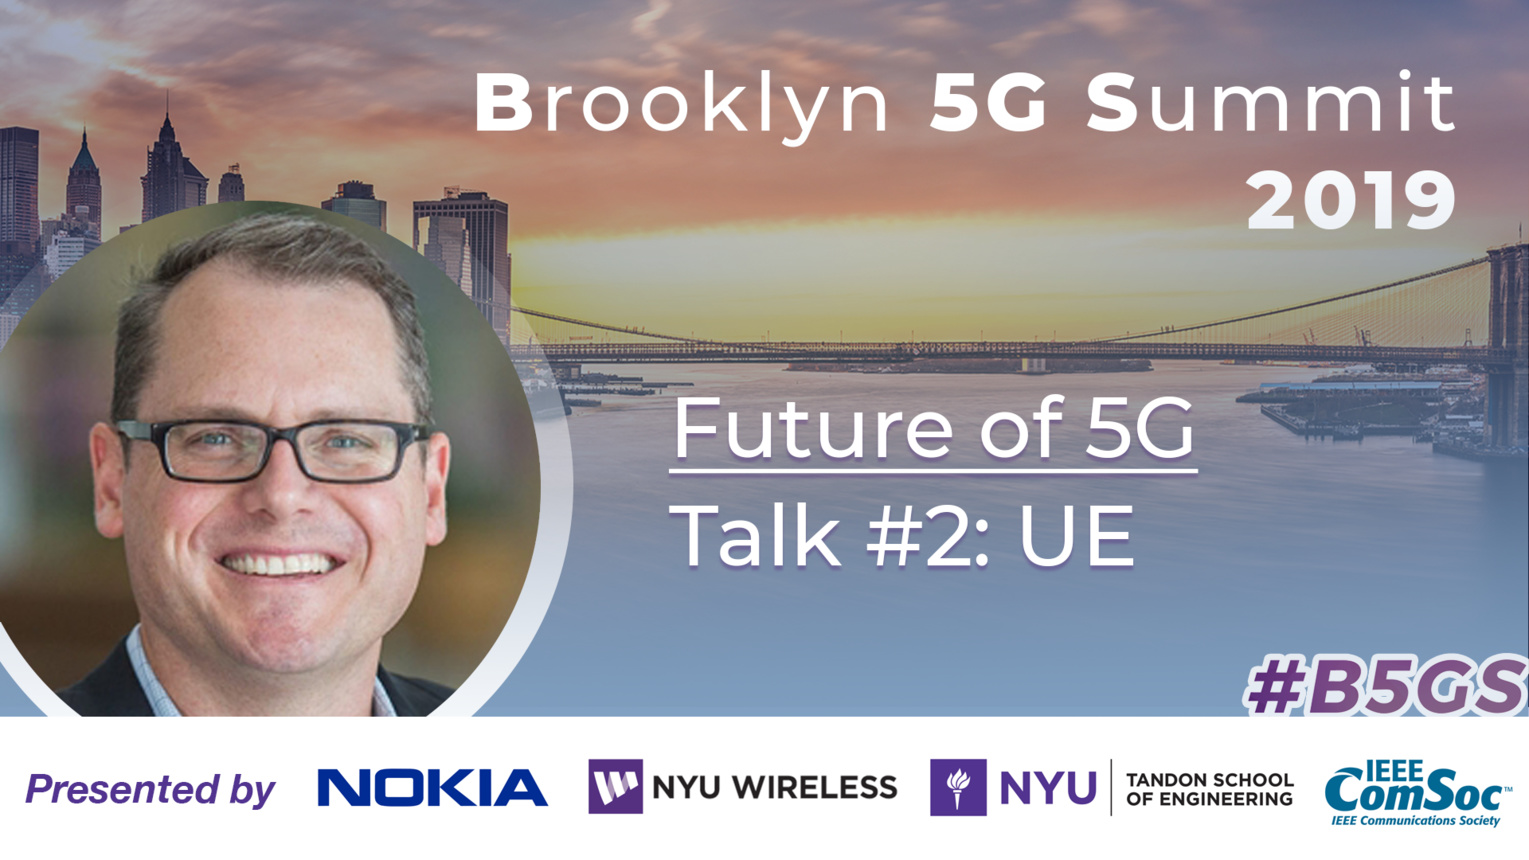 UE: Future of 5G - John Smee - B5GS 2019